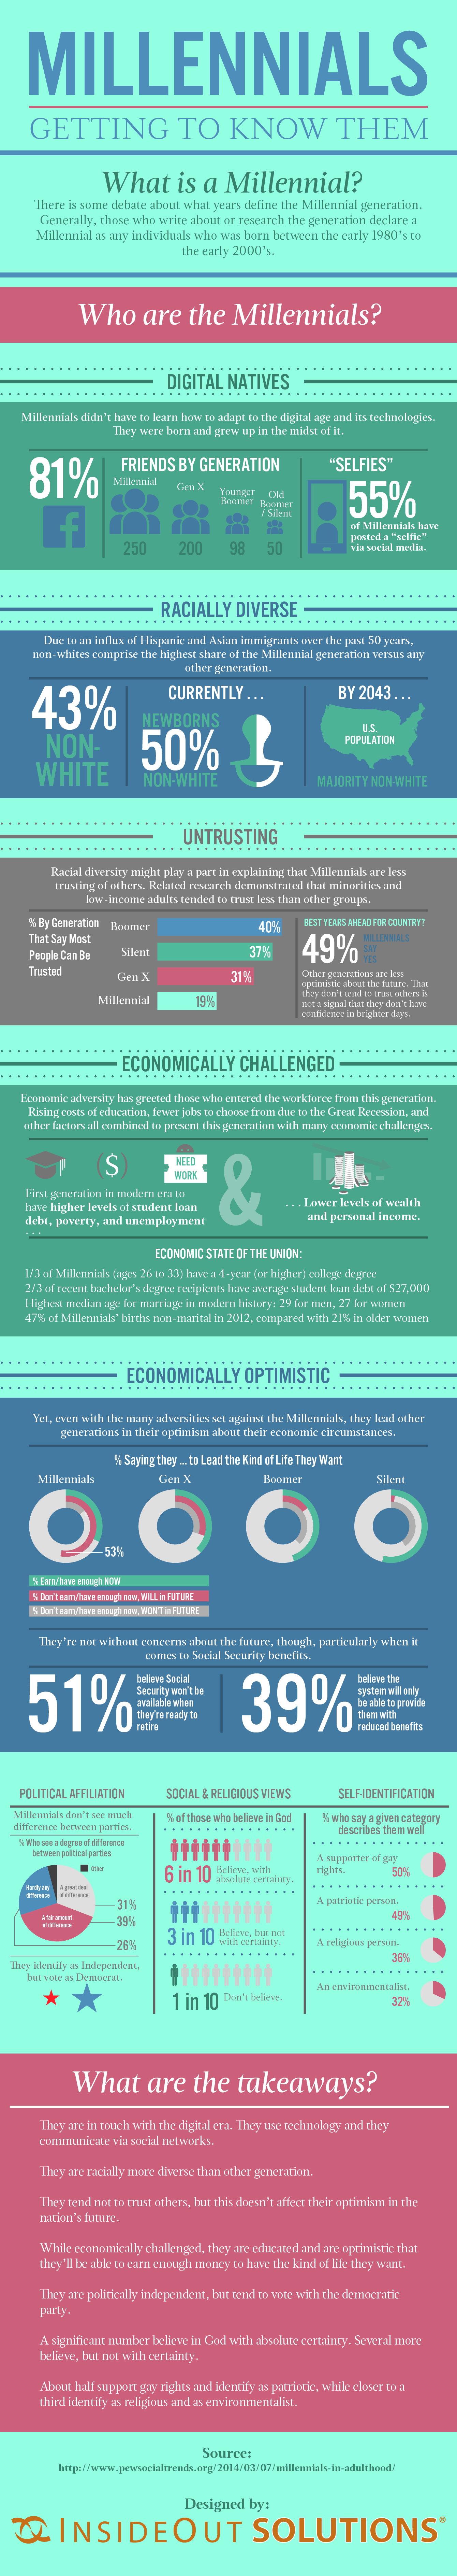 Information about Millennials for Marketing